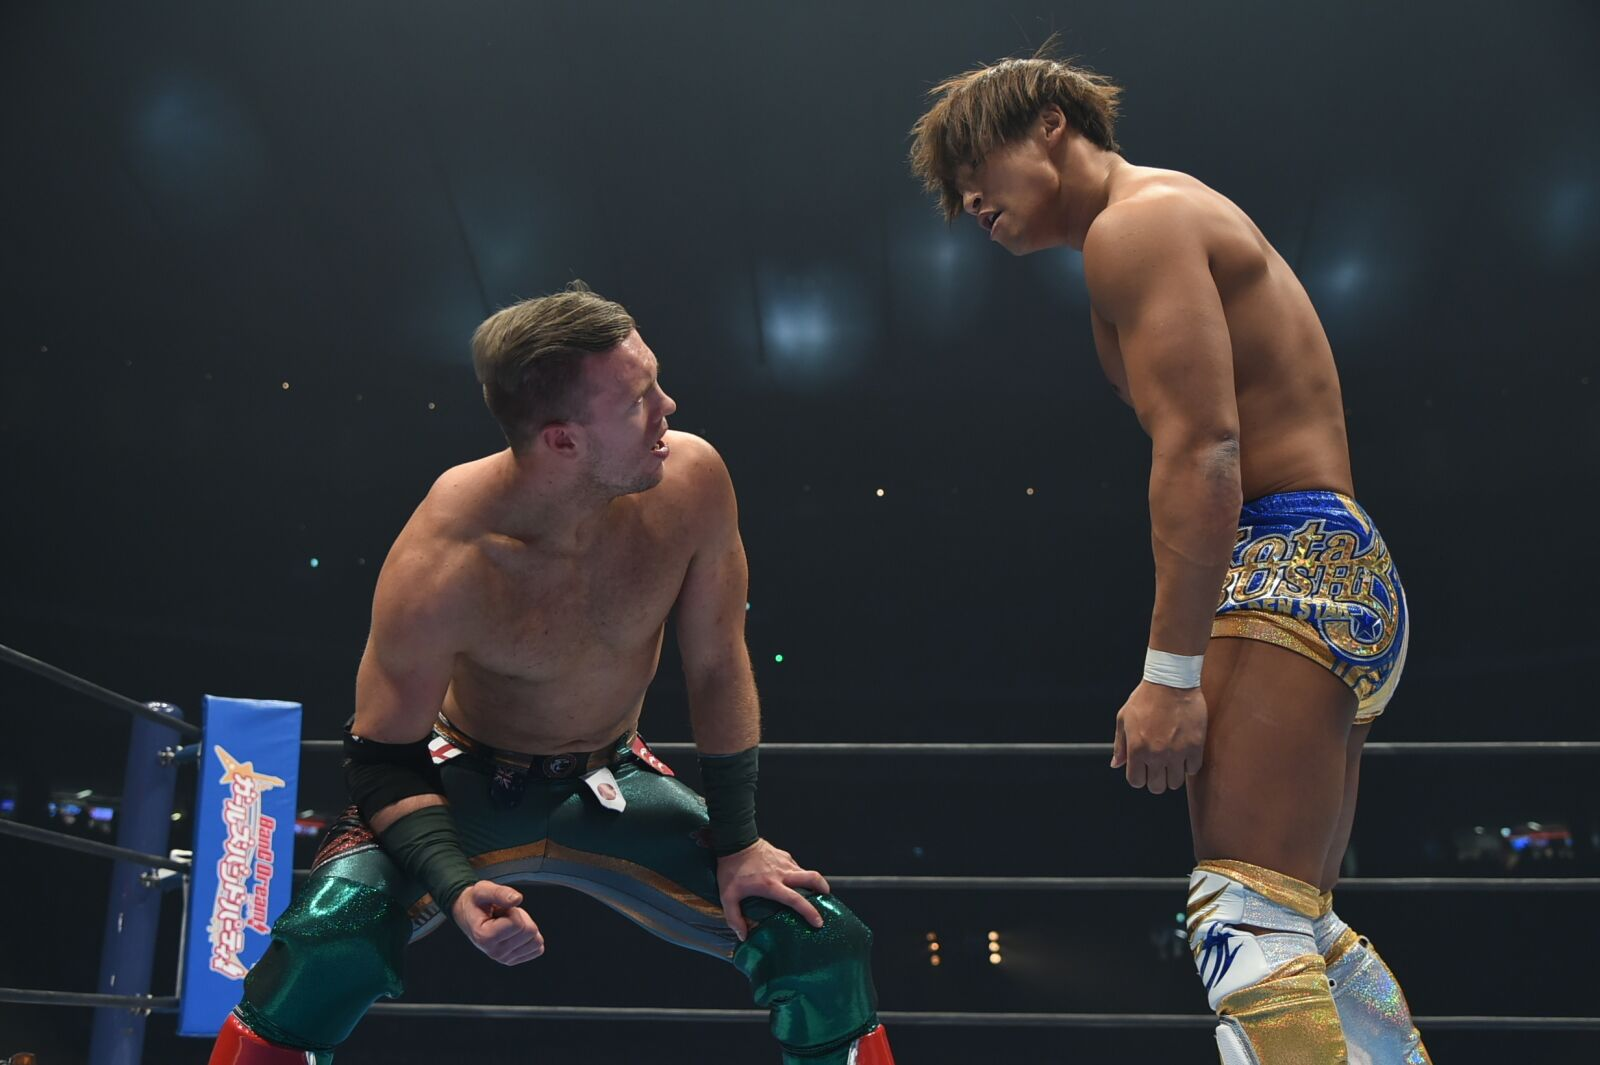 NJPW G1 Climax 29 Night 5: Ibushi and Ospreay tease draw in outstanding Korakuen Hall main event